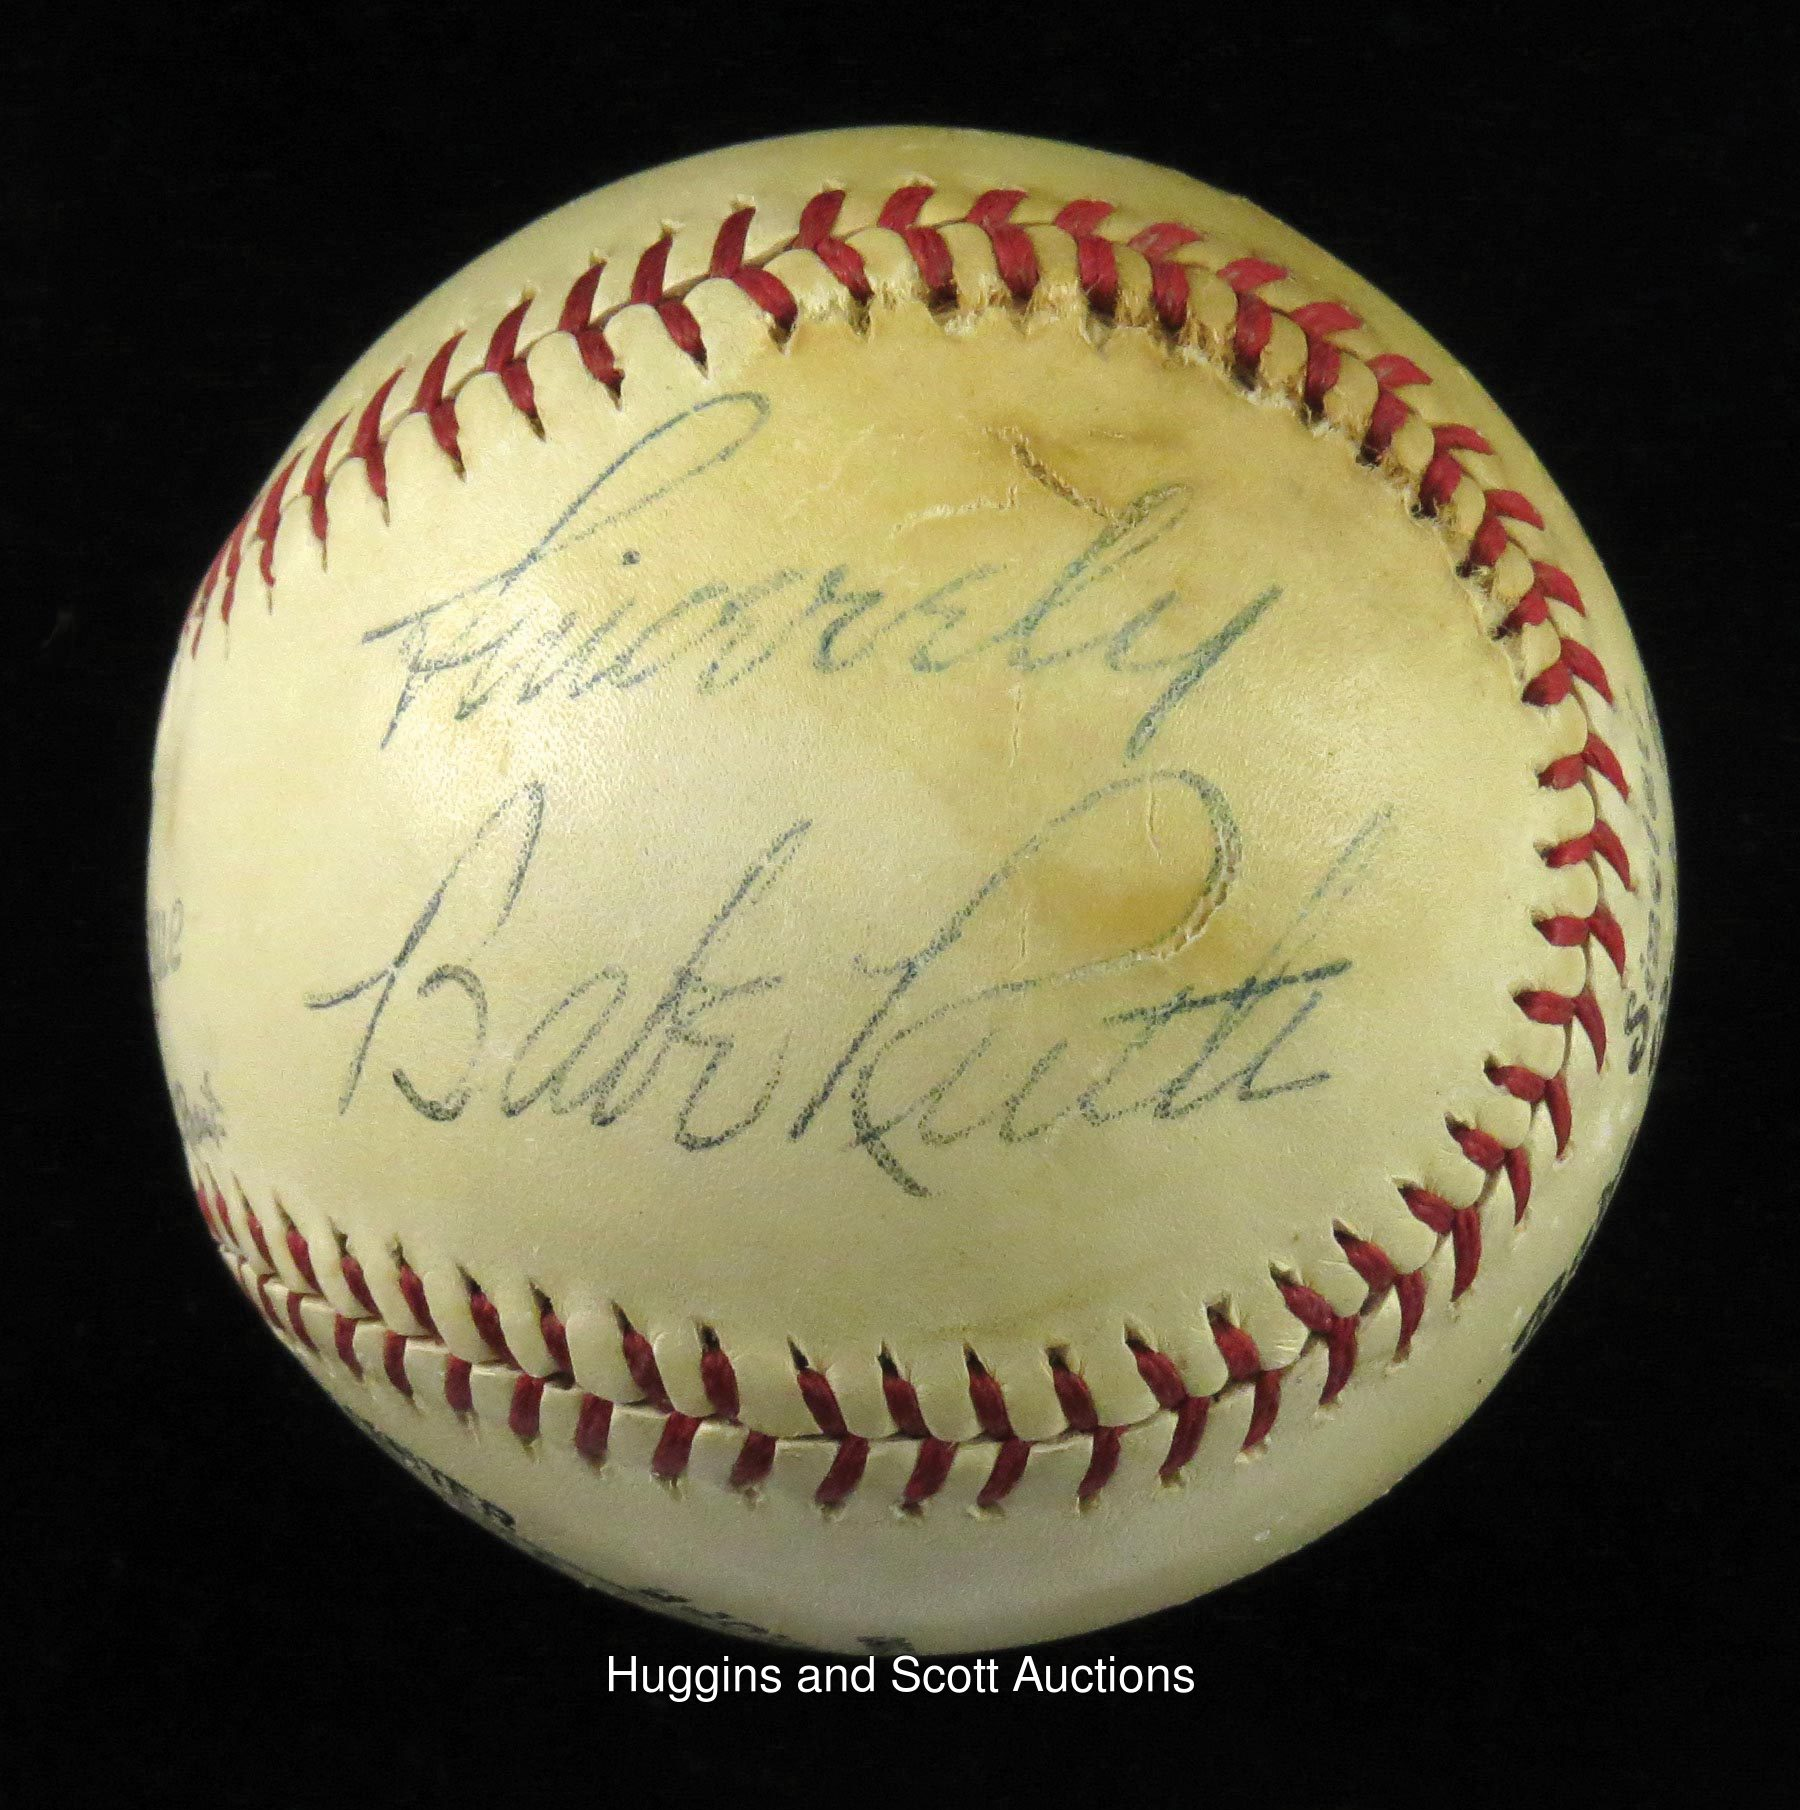 babe ruth sinclair babe ruth baseball contest ball